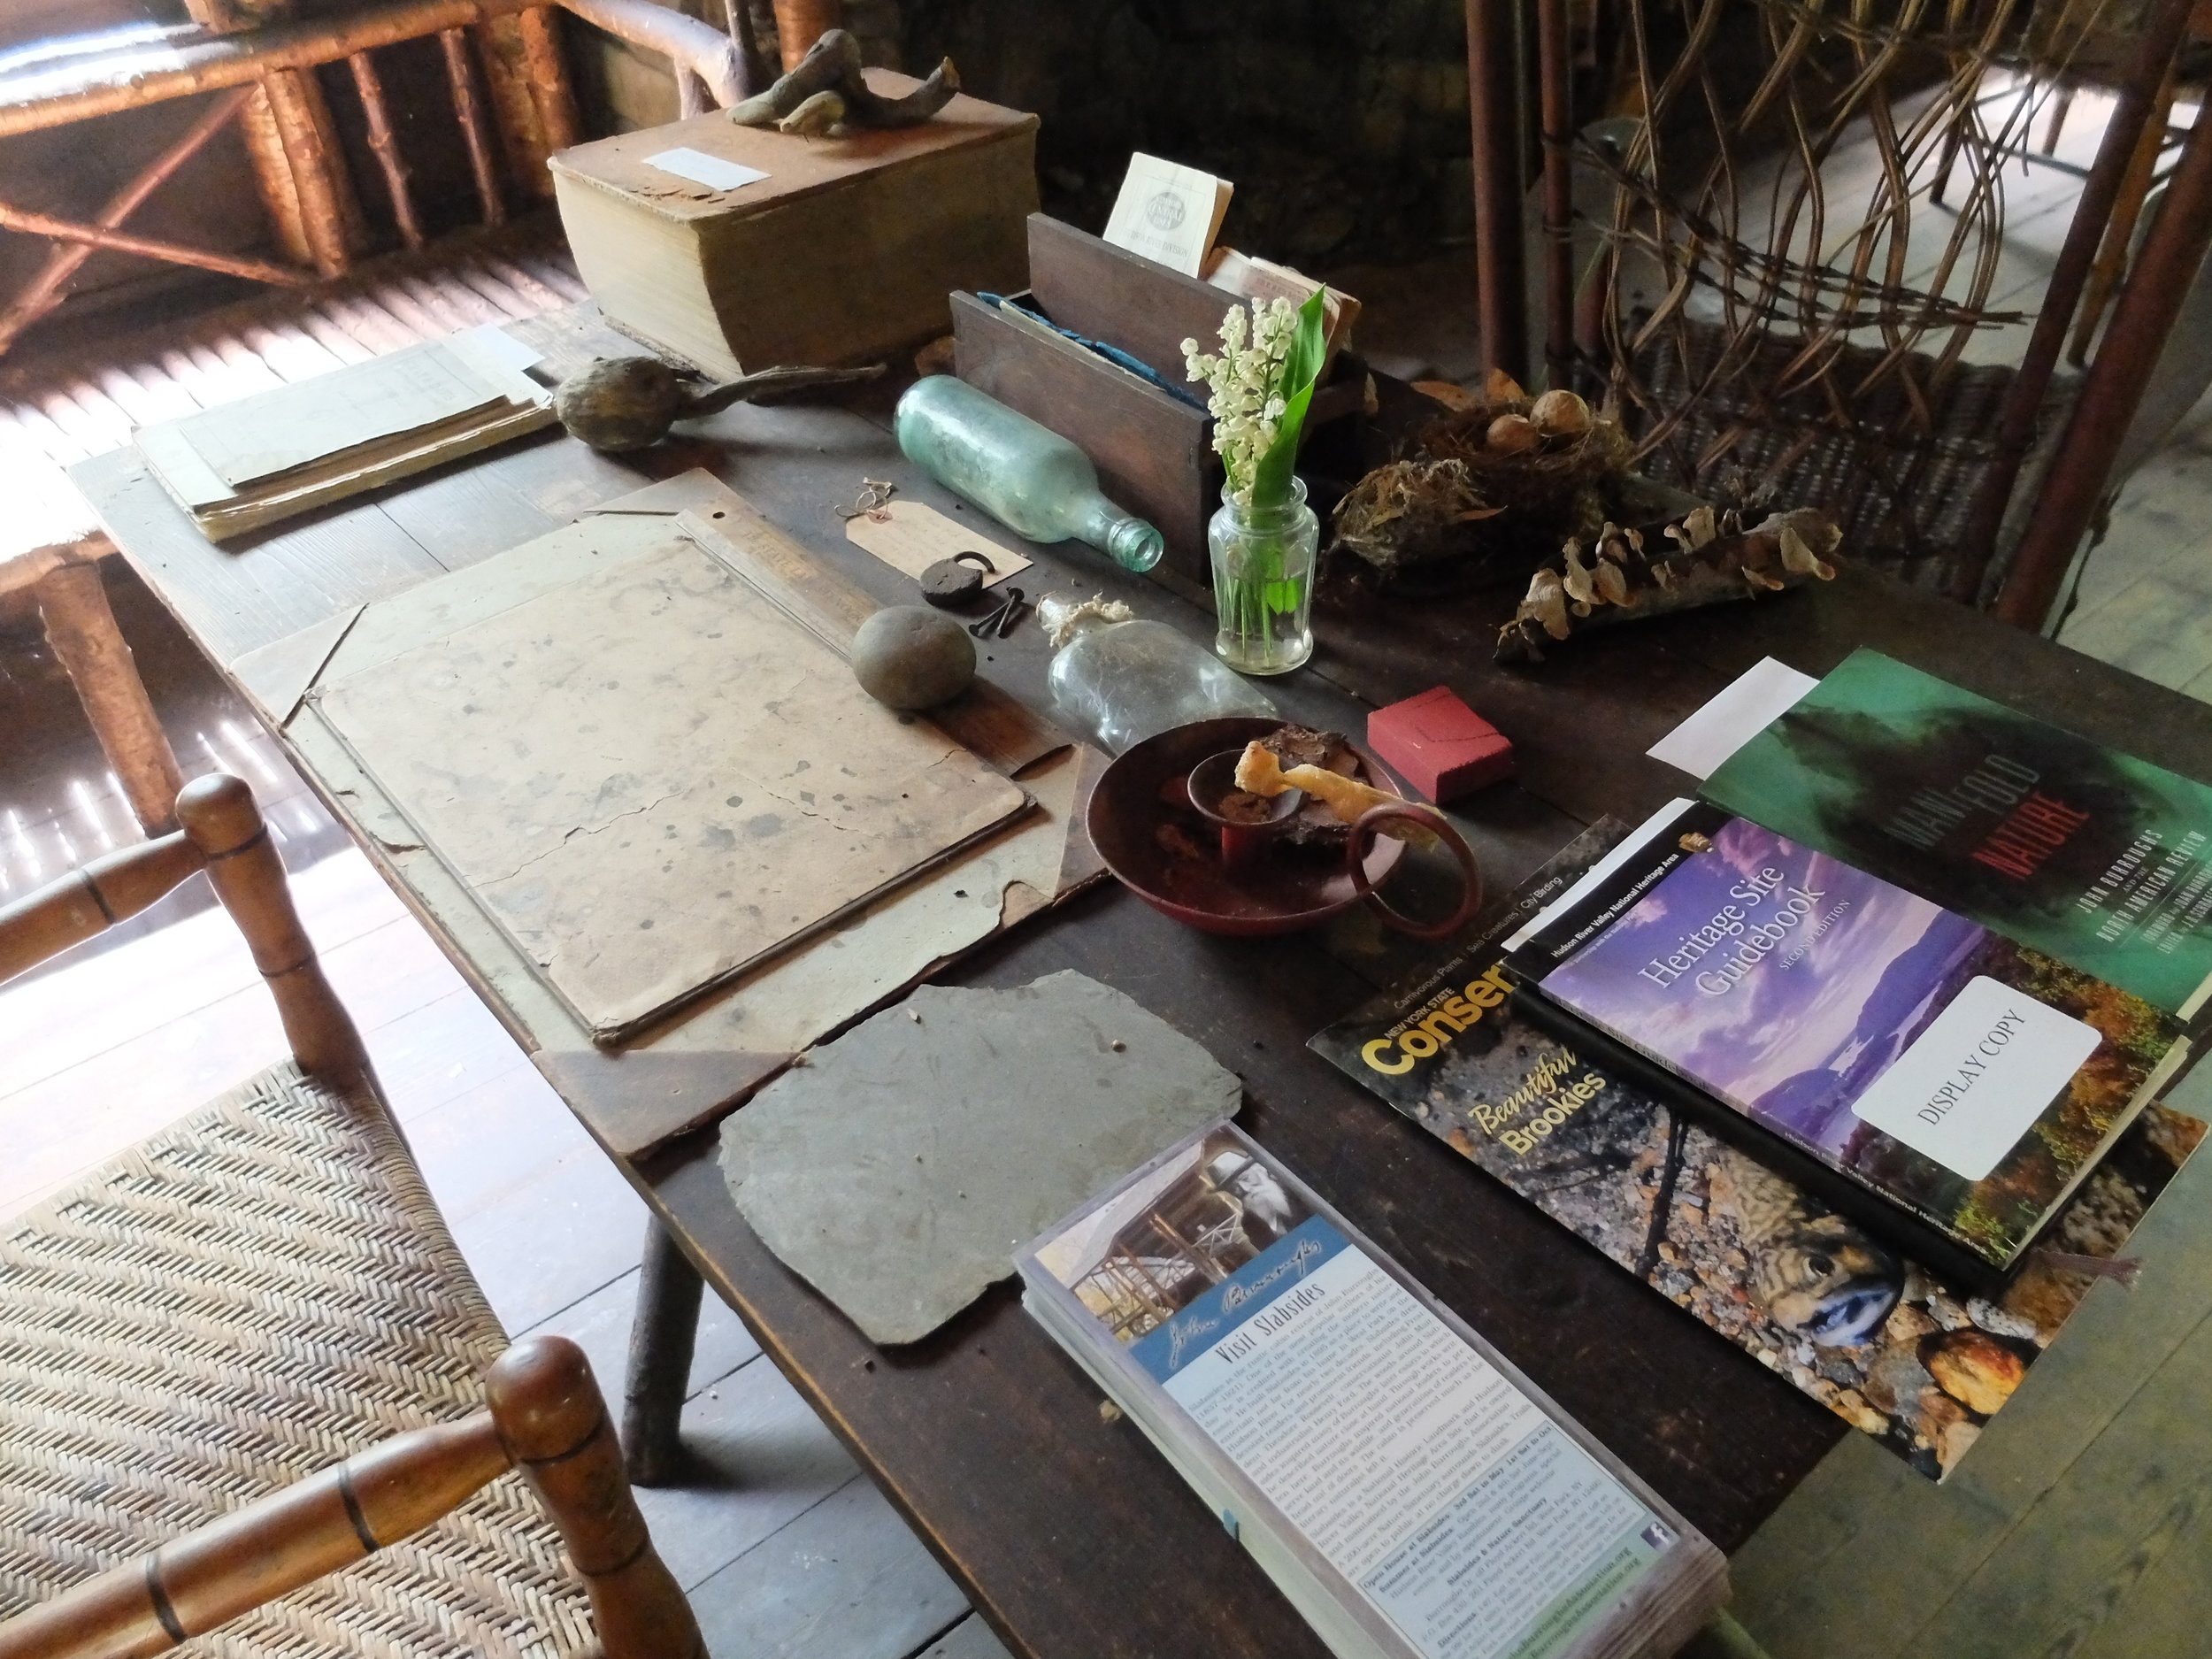 John Burroughs desk at slabsides